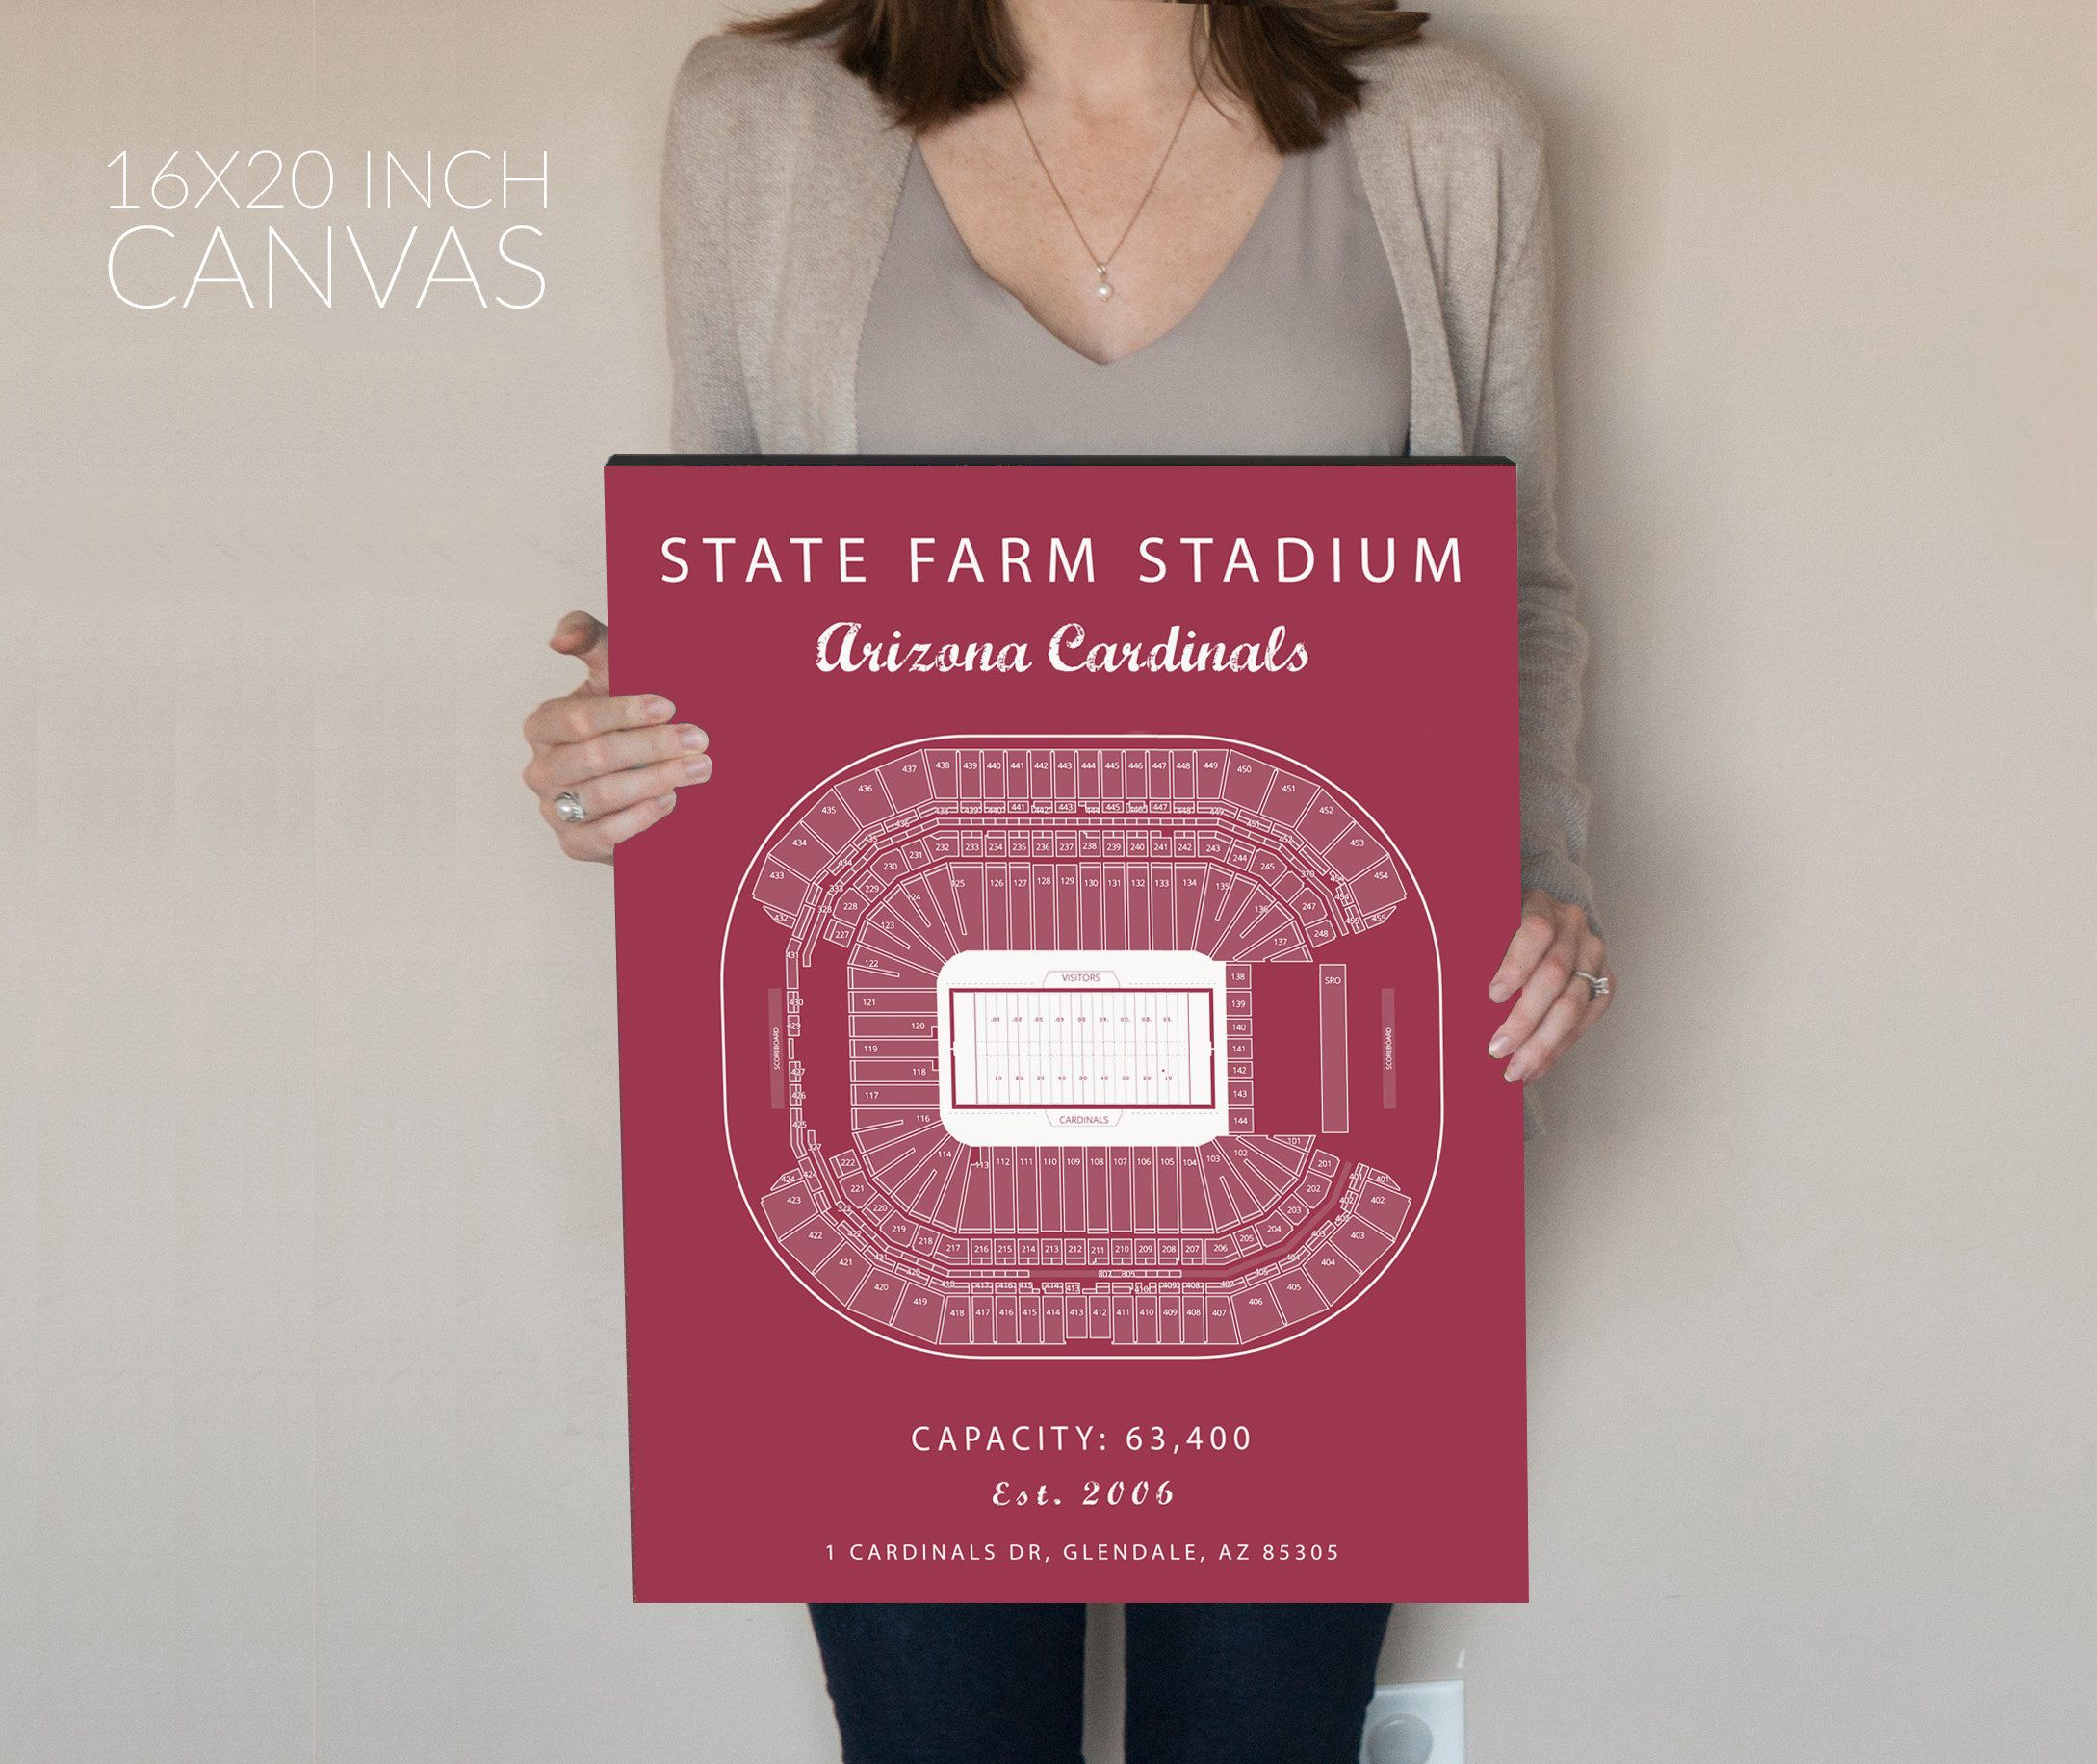 Arizona Cardinals State Farm Stadium Seating Chart Art